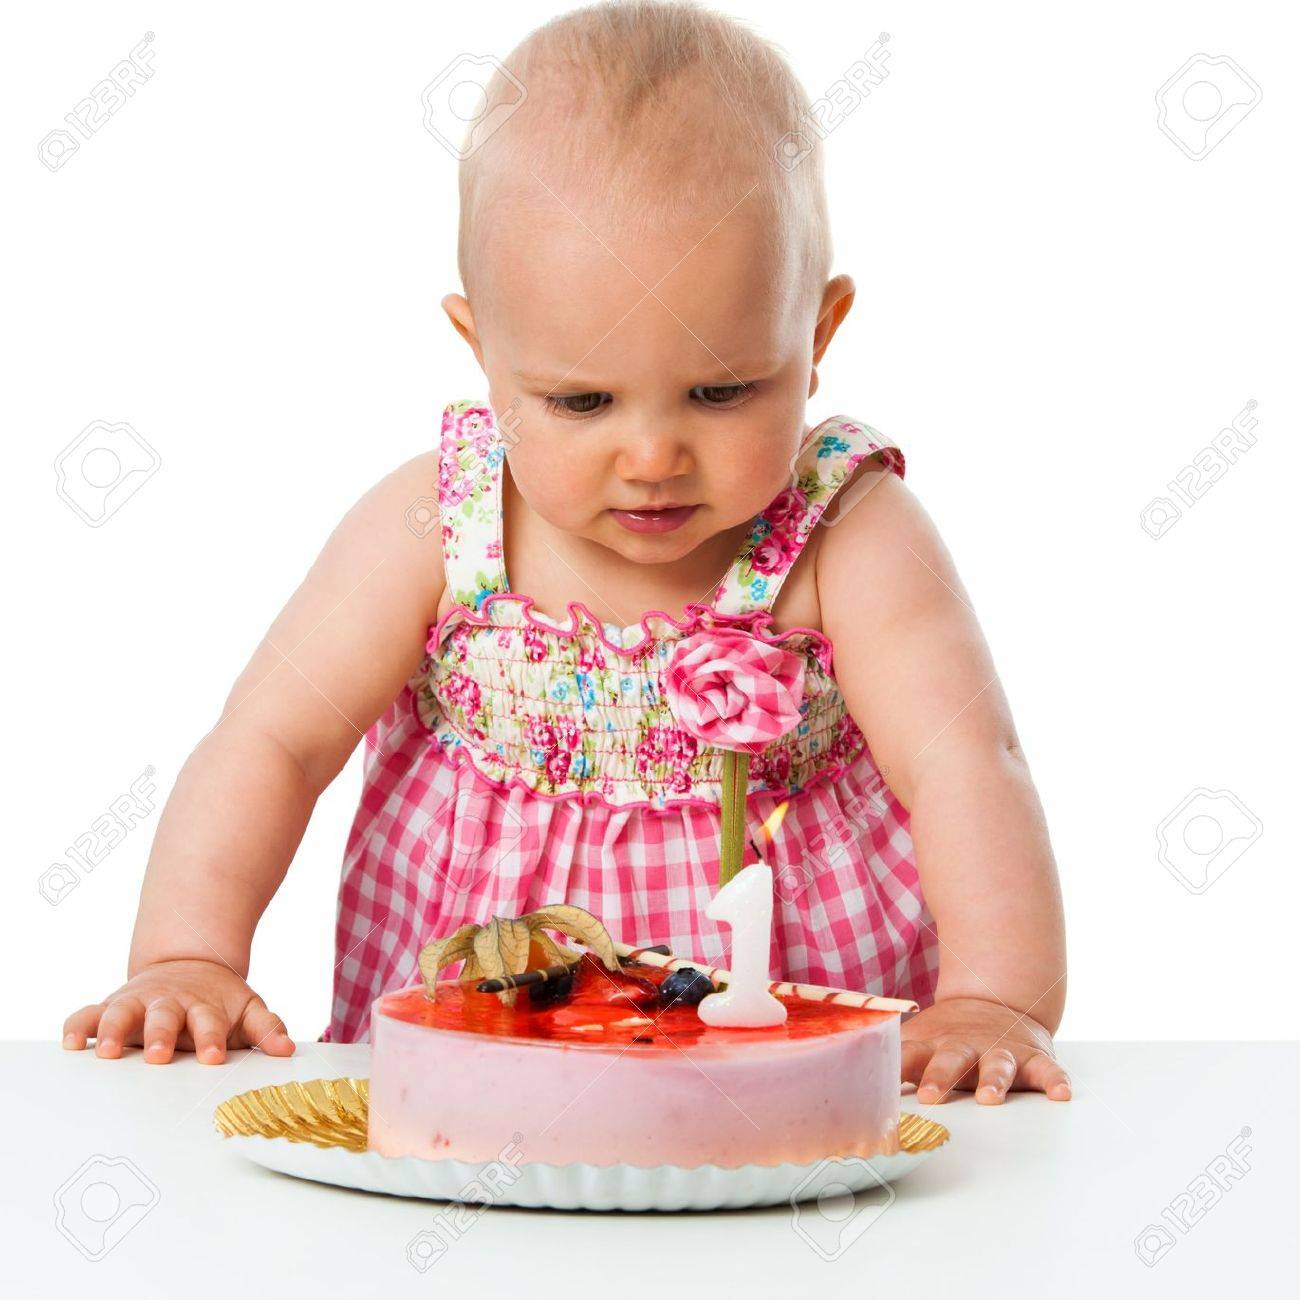 Portrait Of Cute Baby Girl Celebrating First Birthday With Cake